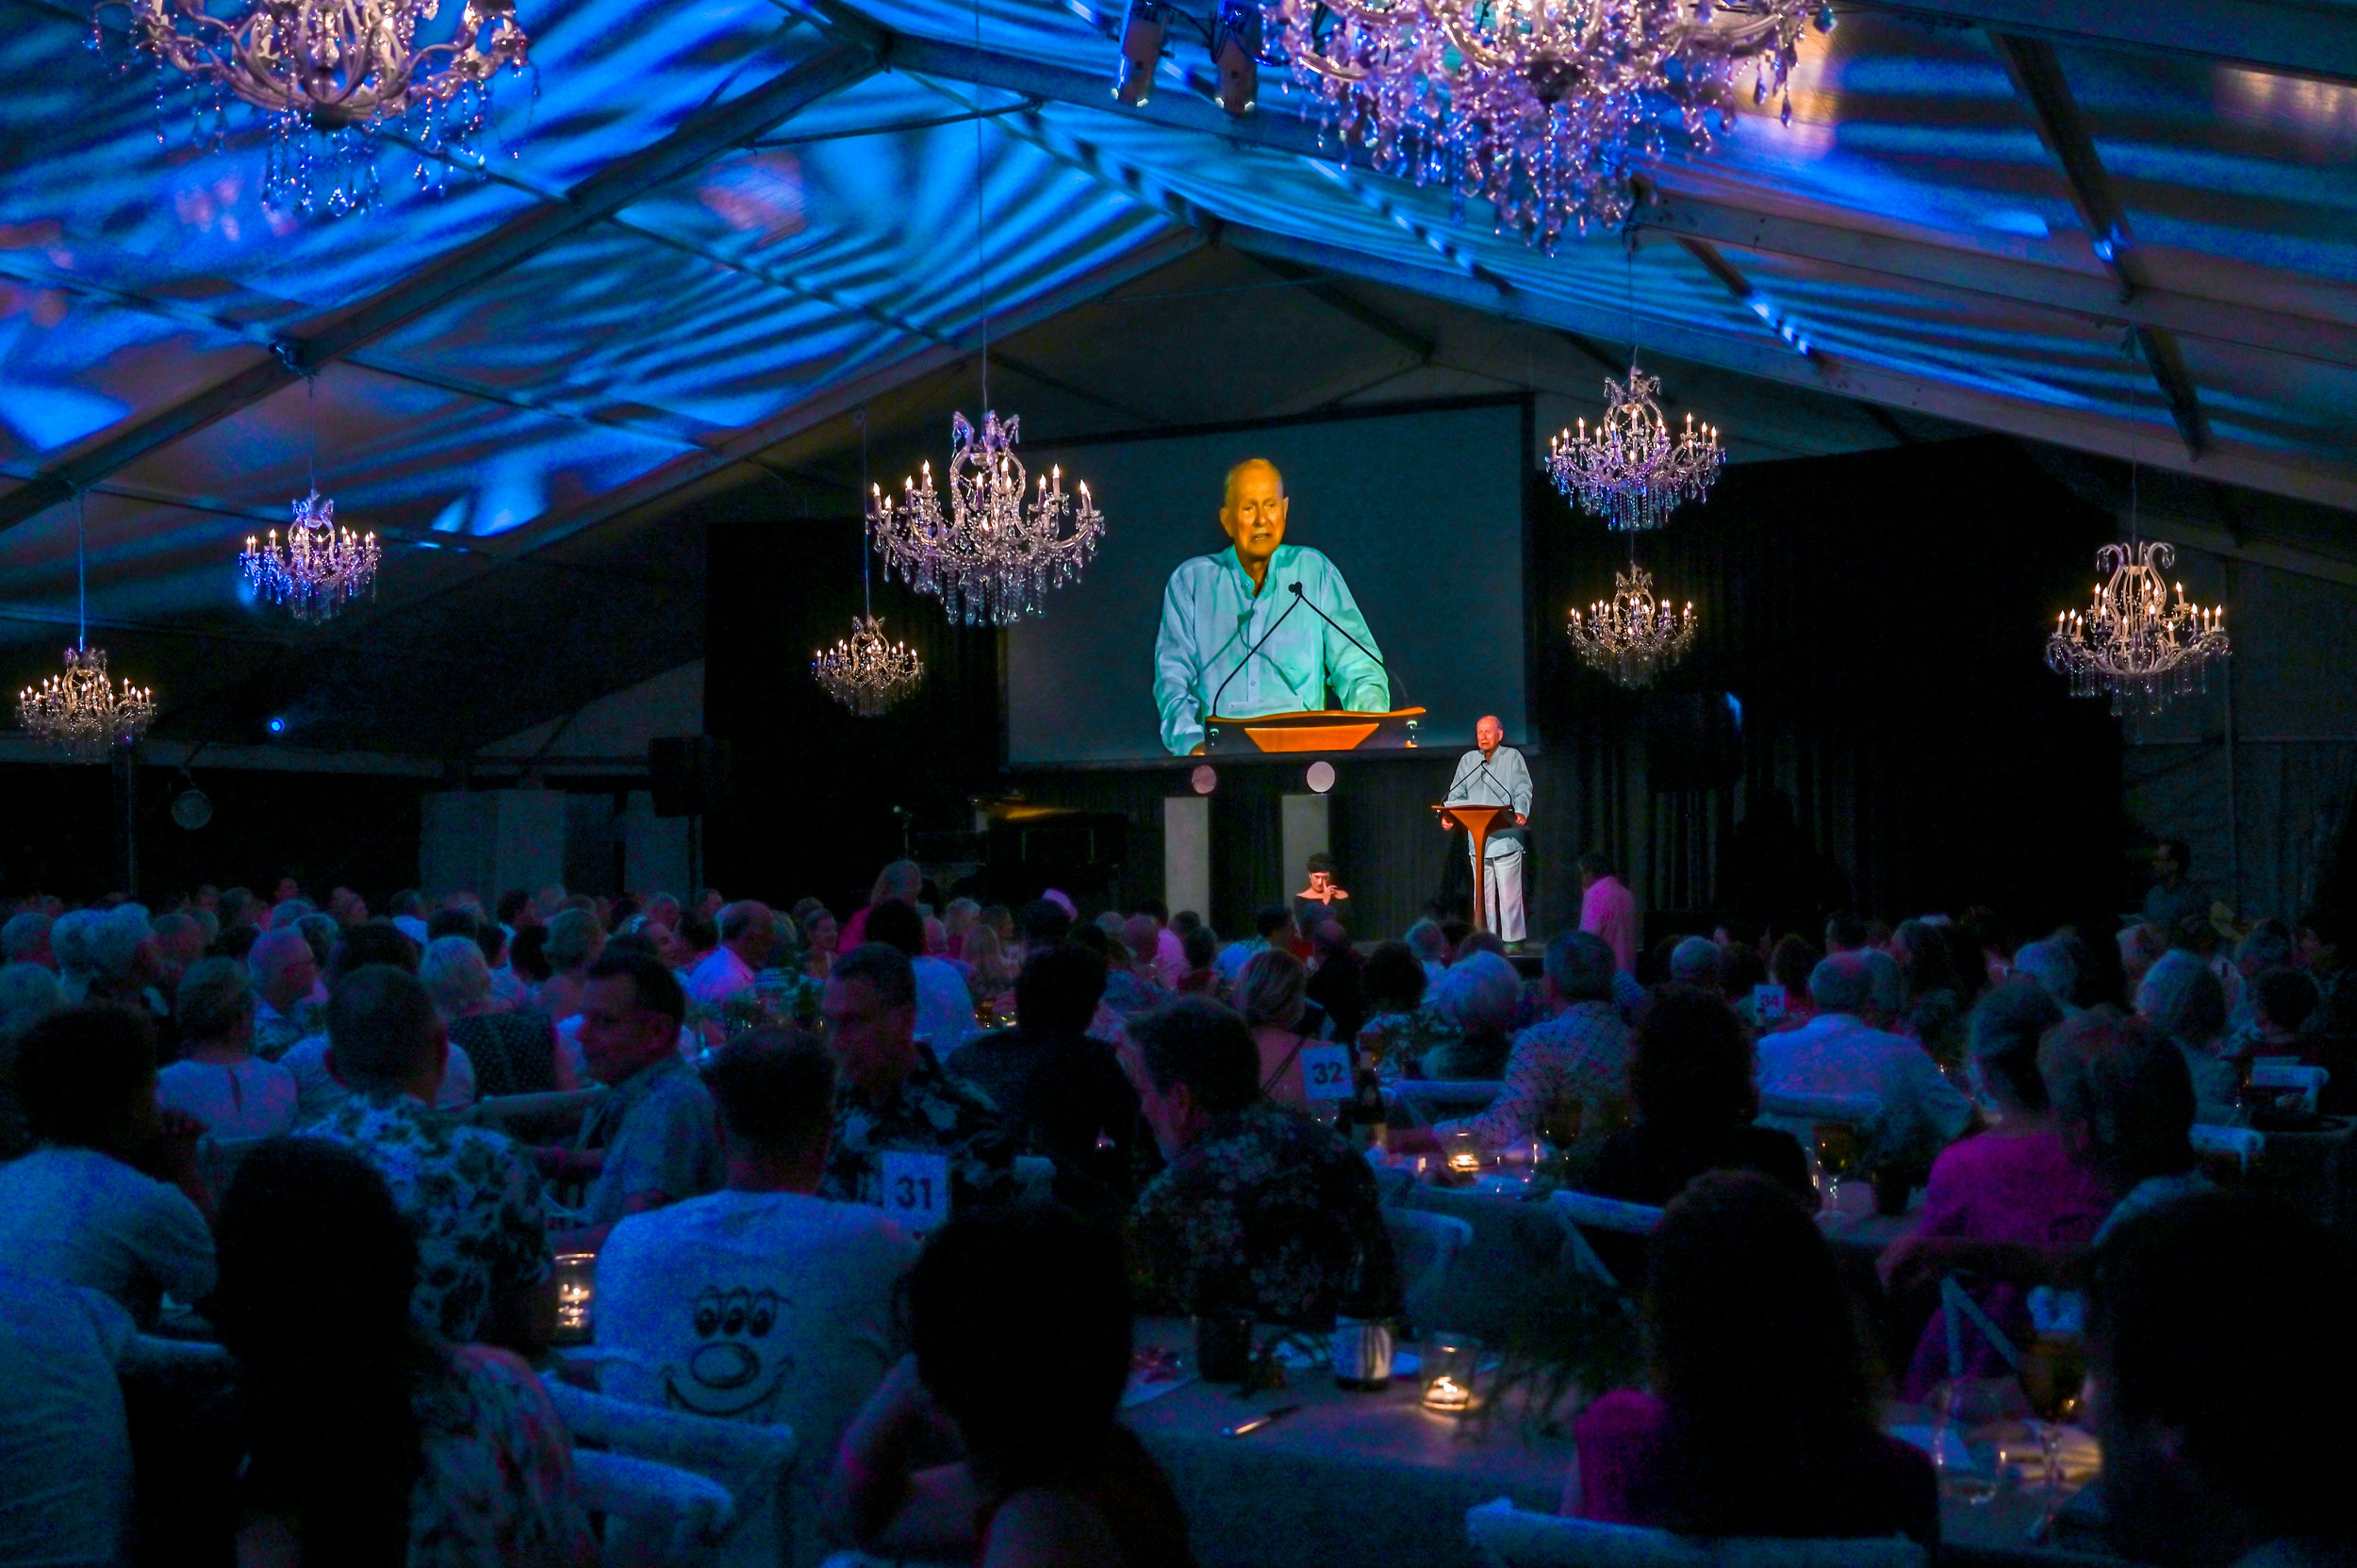 Jack Lenor Larsen during his dinner speech. © Federica Belli